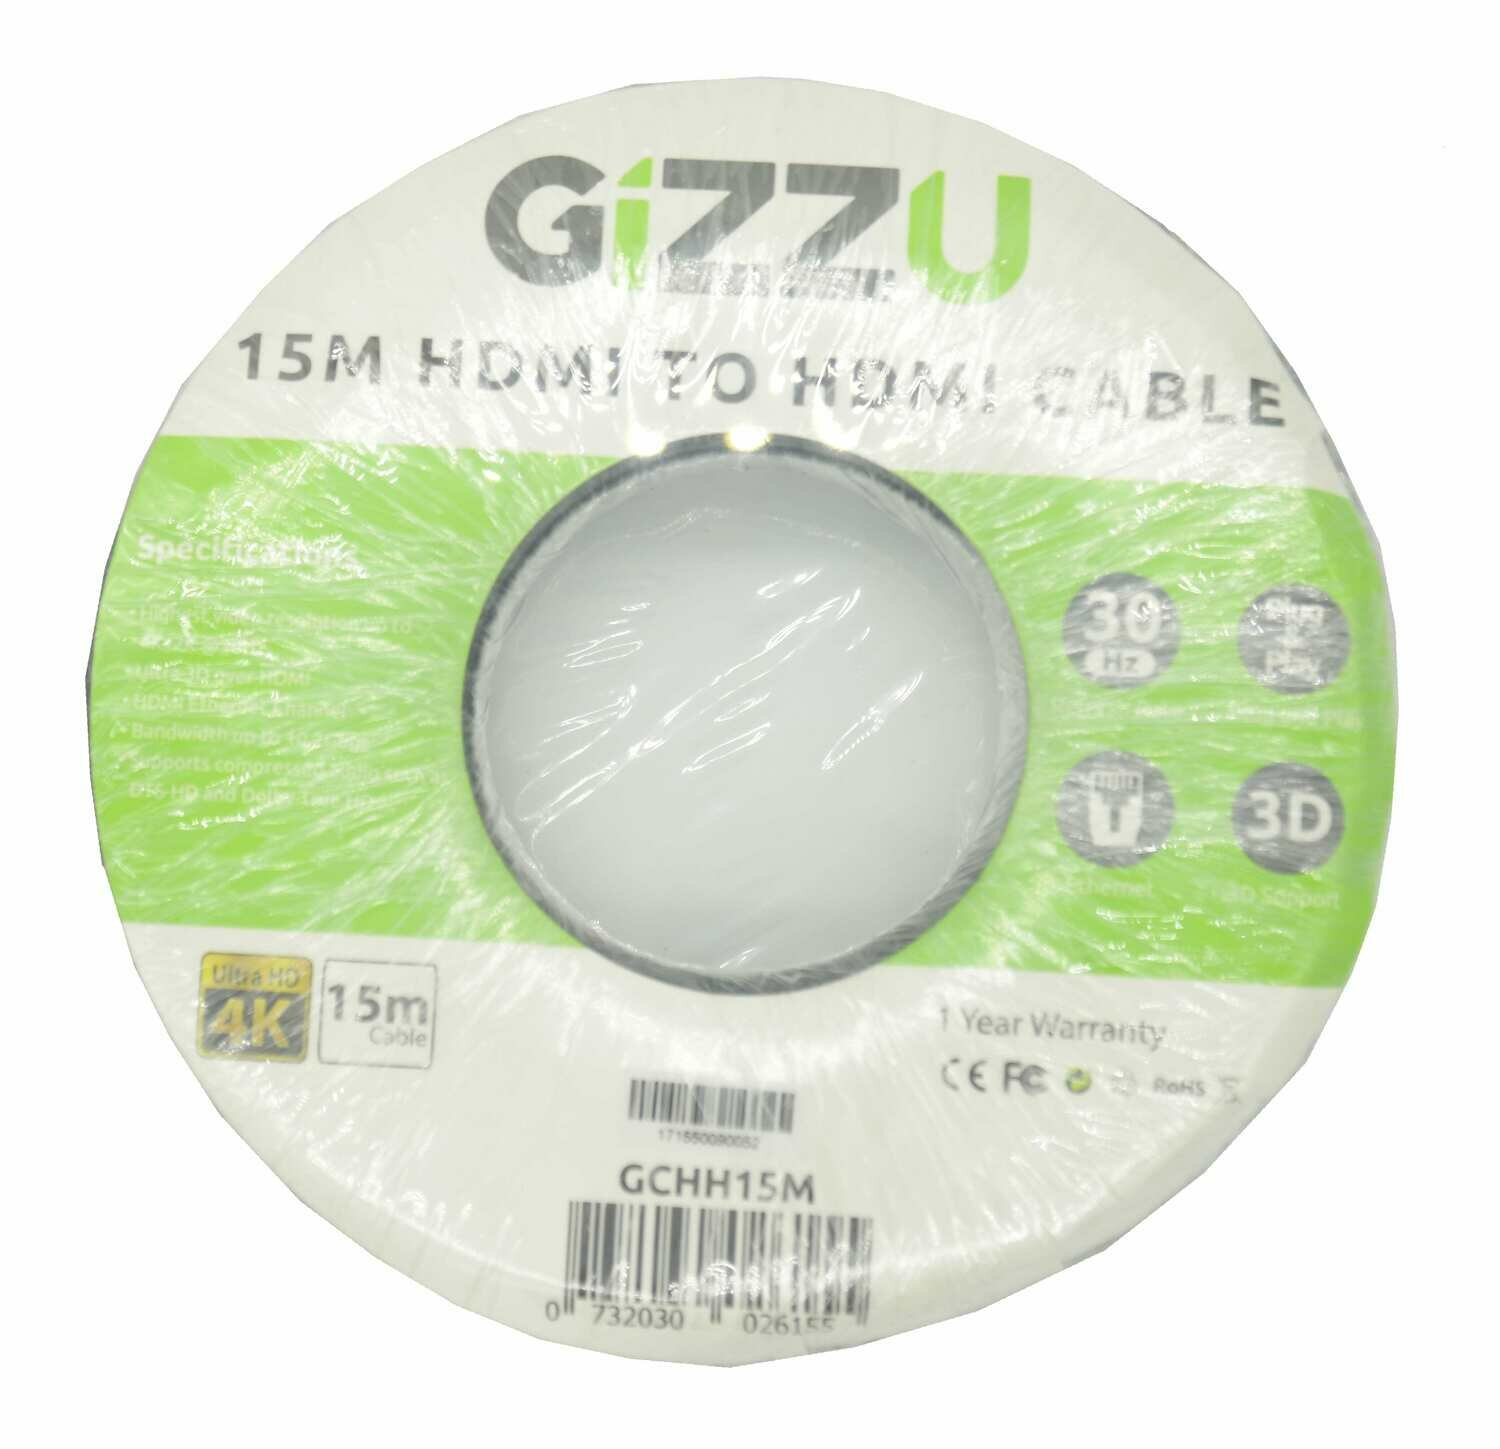 GIZZU High Speed V1.4 HDMI 15m Cable with Ethernet